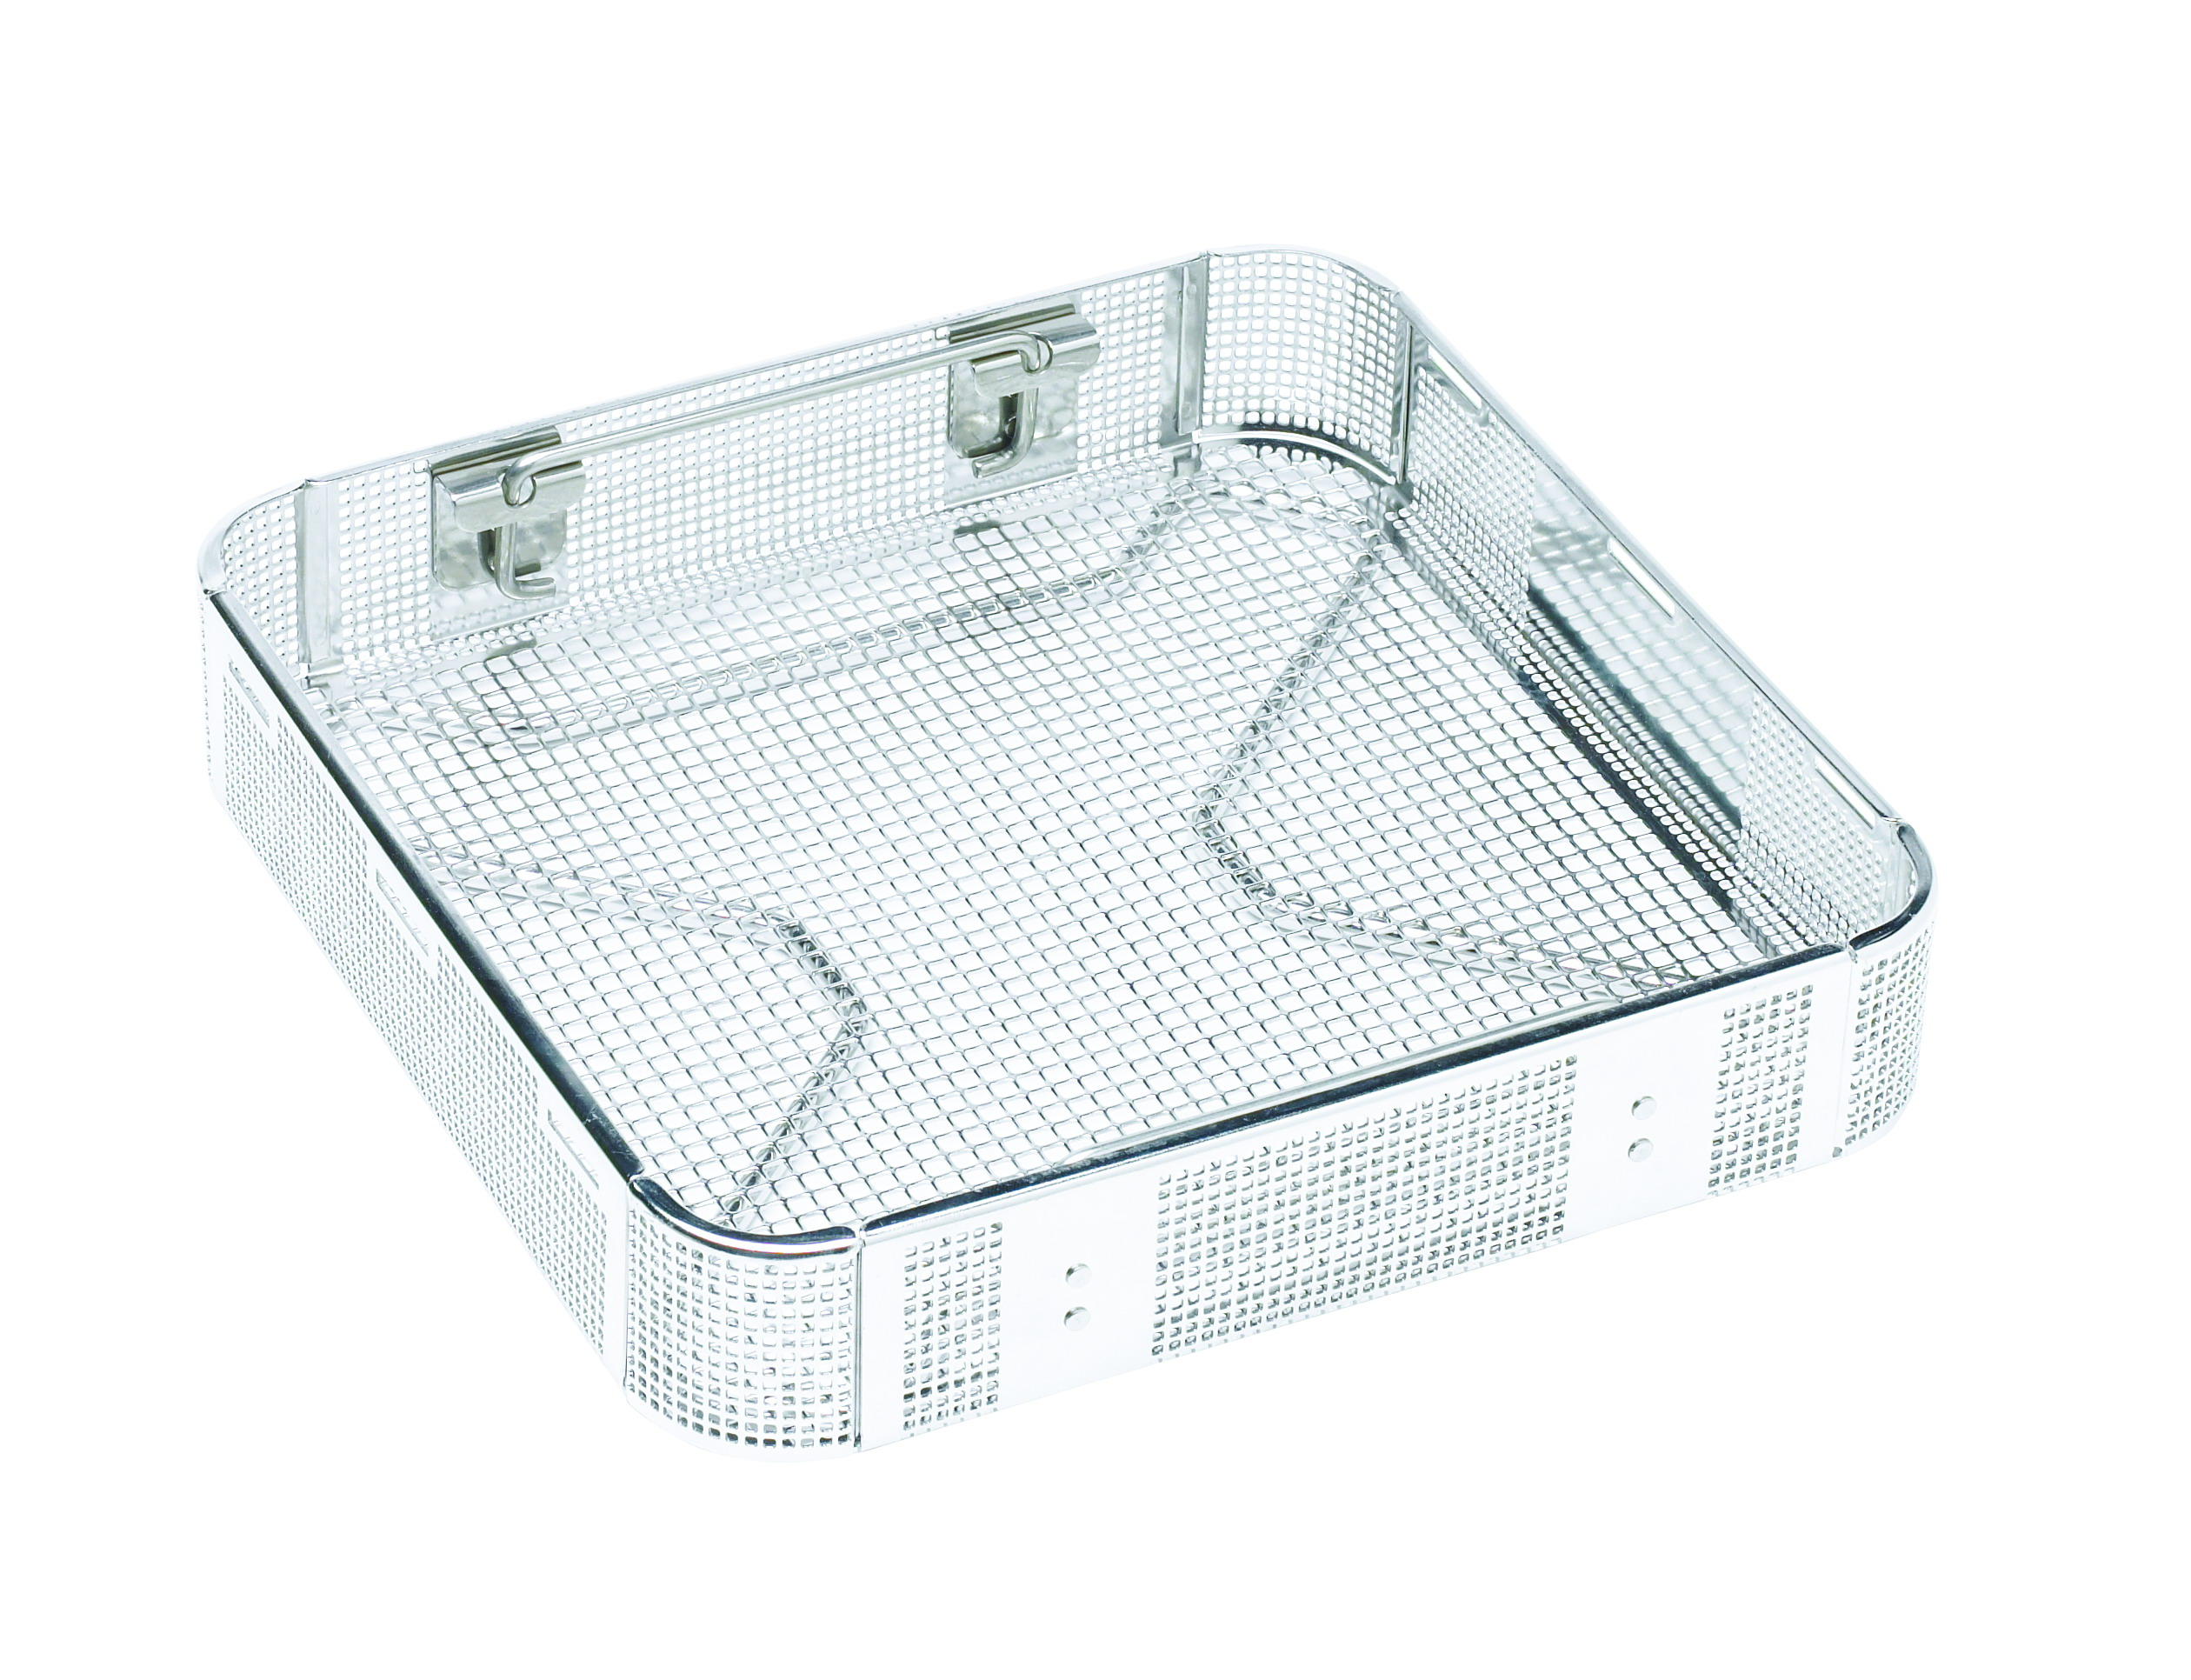 perforated-basket-1-2-size-2-height-3-5174-05-miltex.jpg